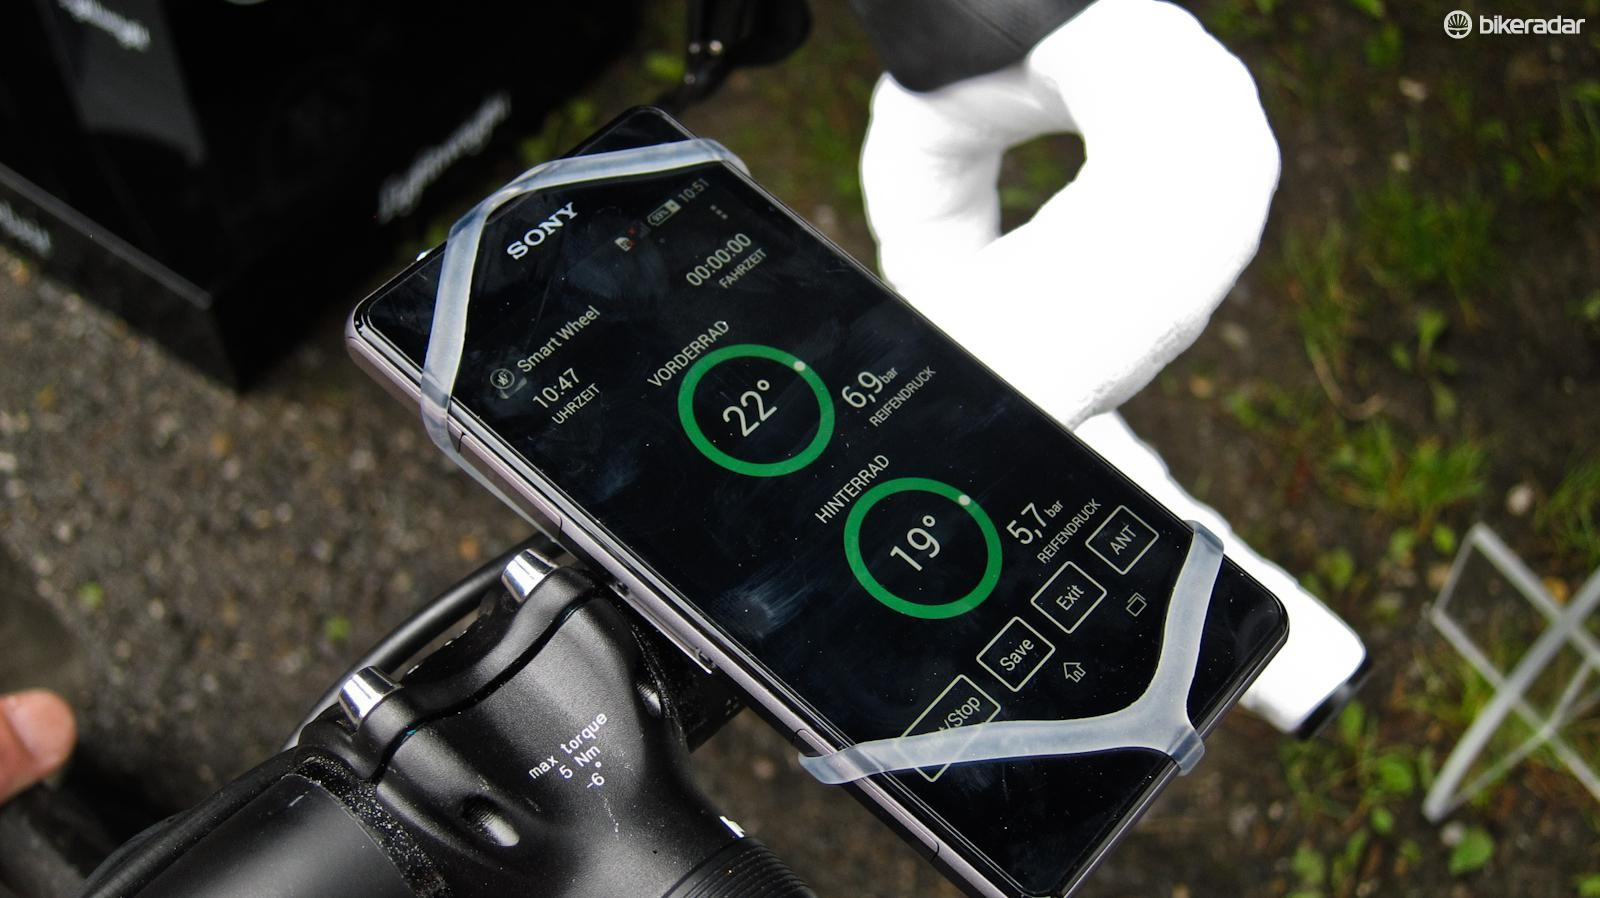 The app gives realtime data about the wheels' temperature and pressure...